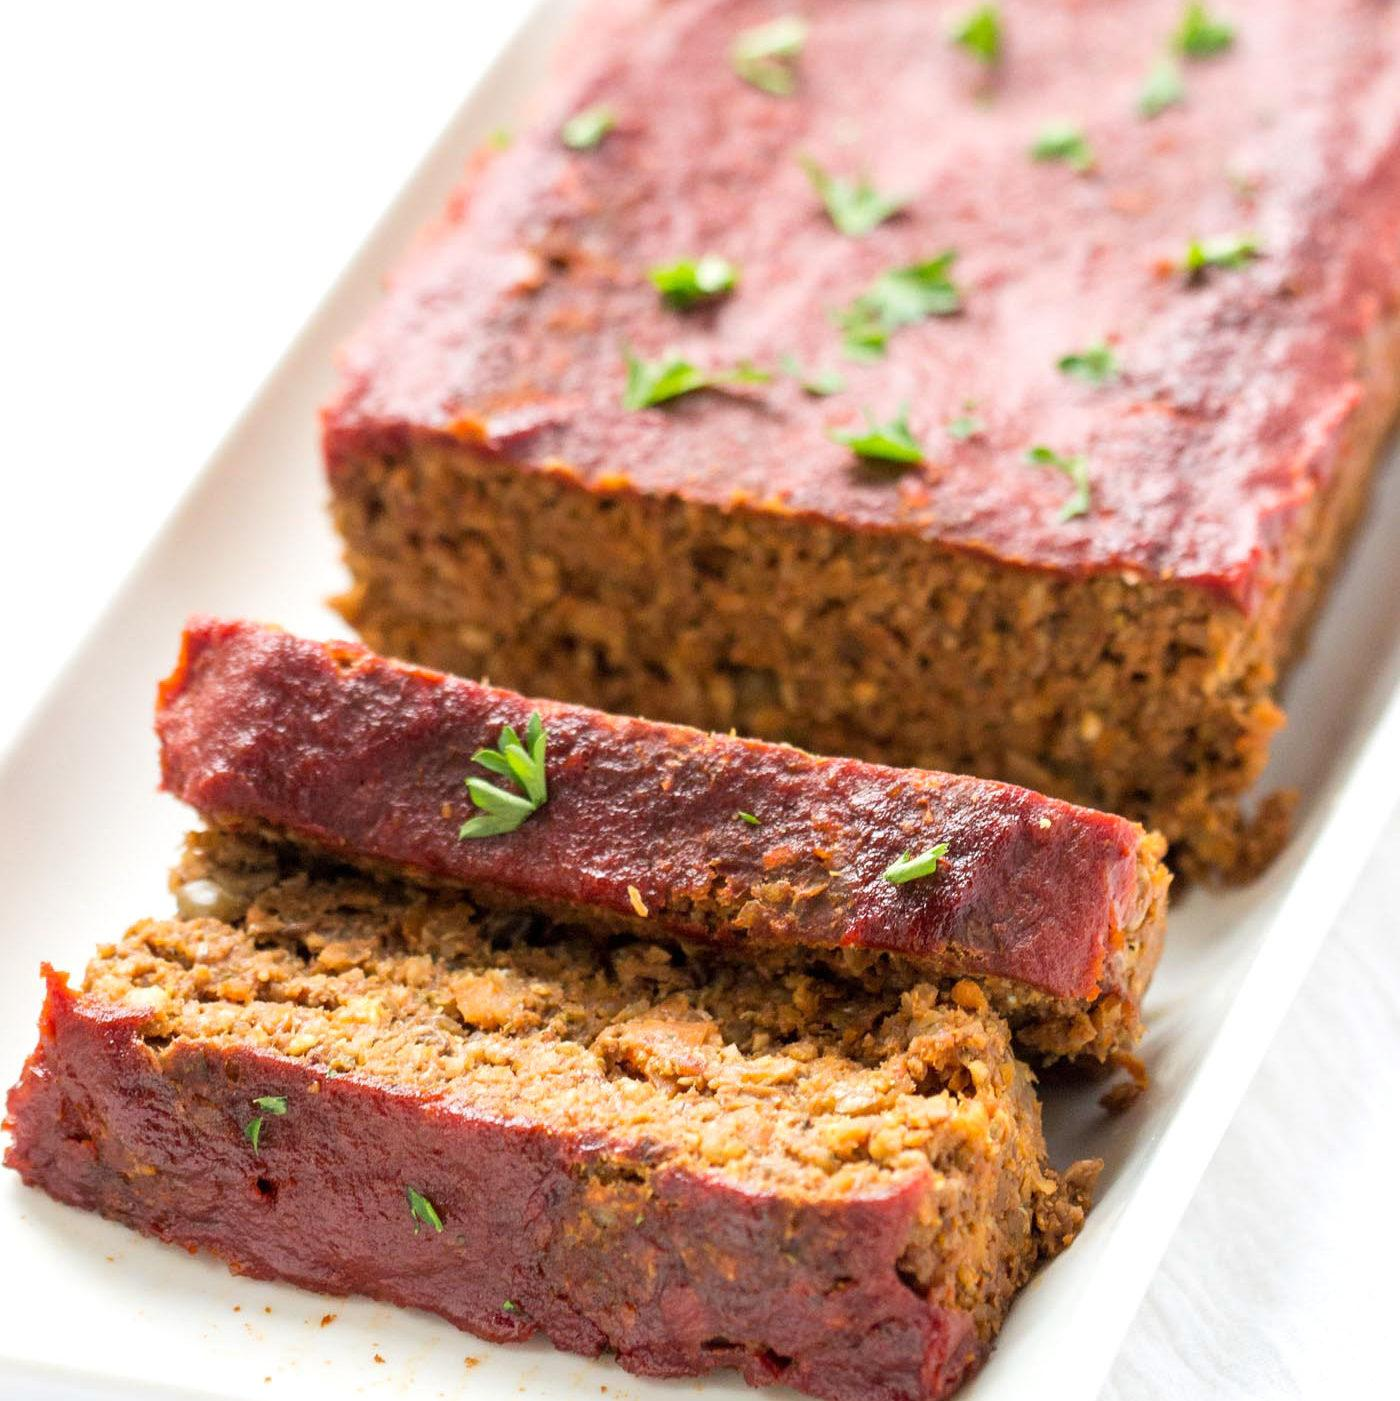 Vegan Lentil And Quinoa Meatloaf